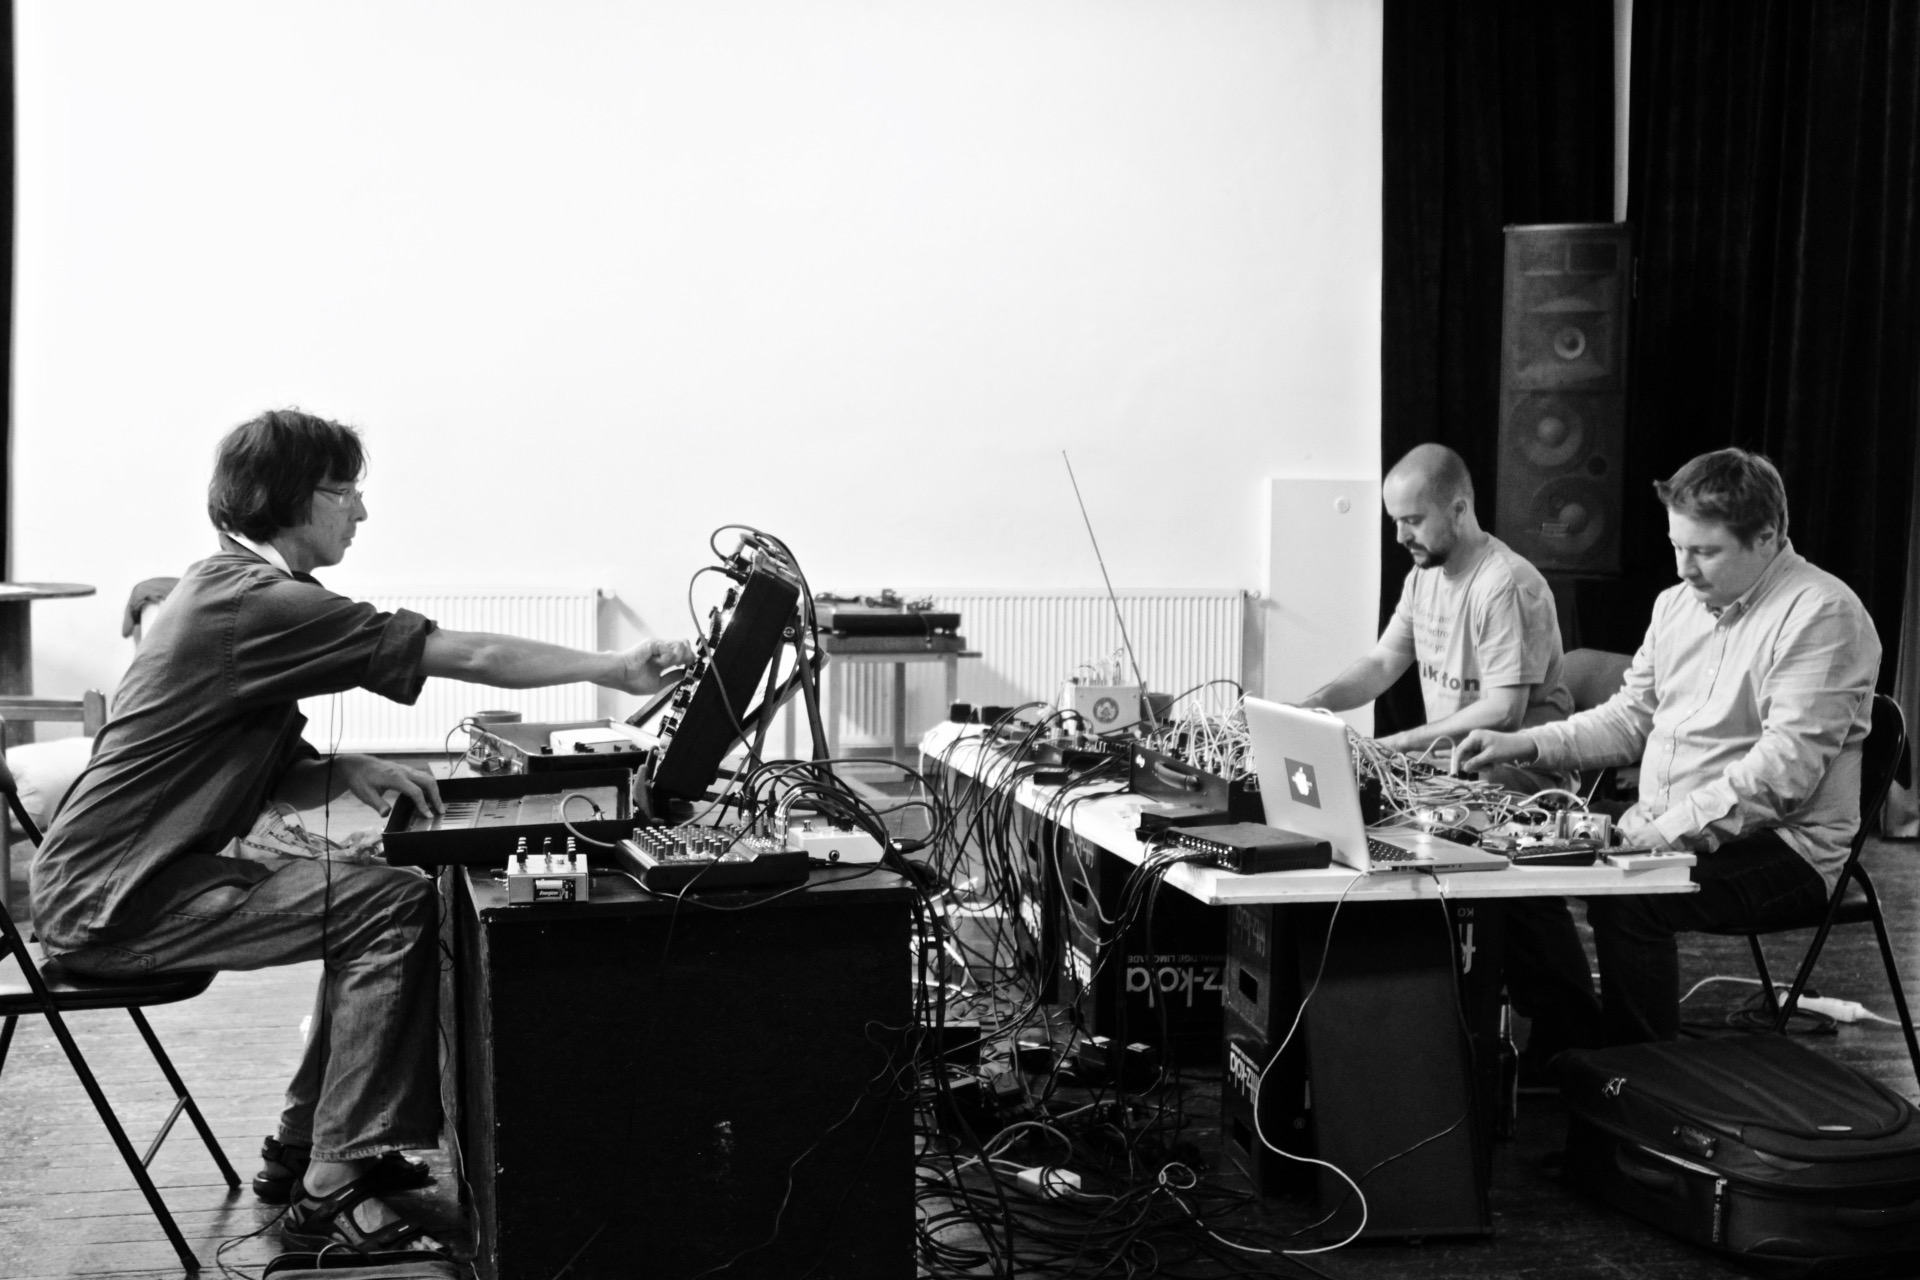 Photo of Kurt Leidwart performing with two others on modular synthesizers and electronics